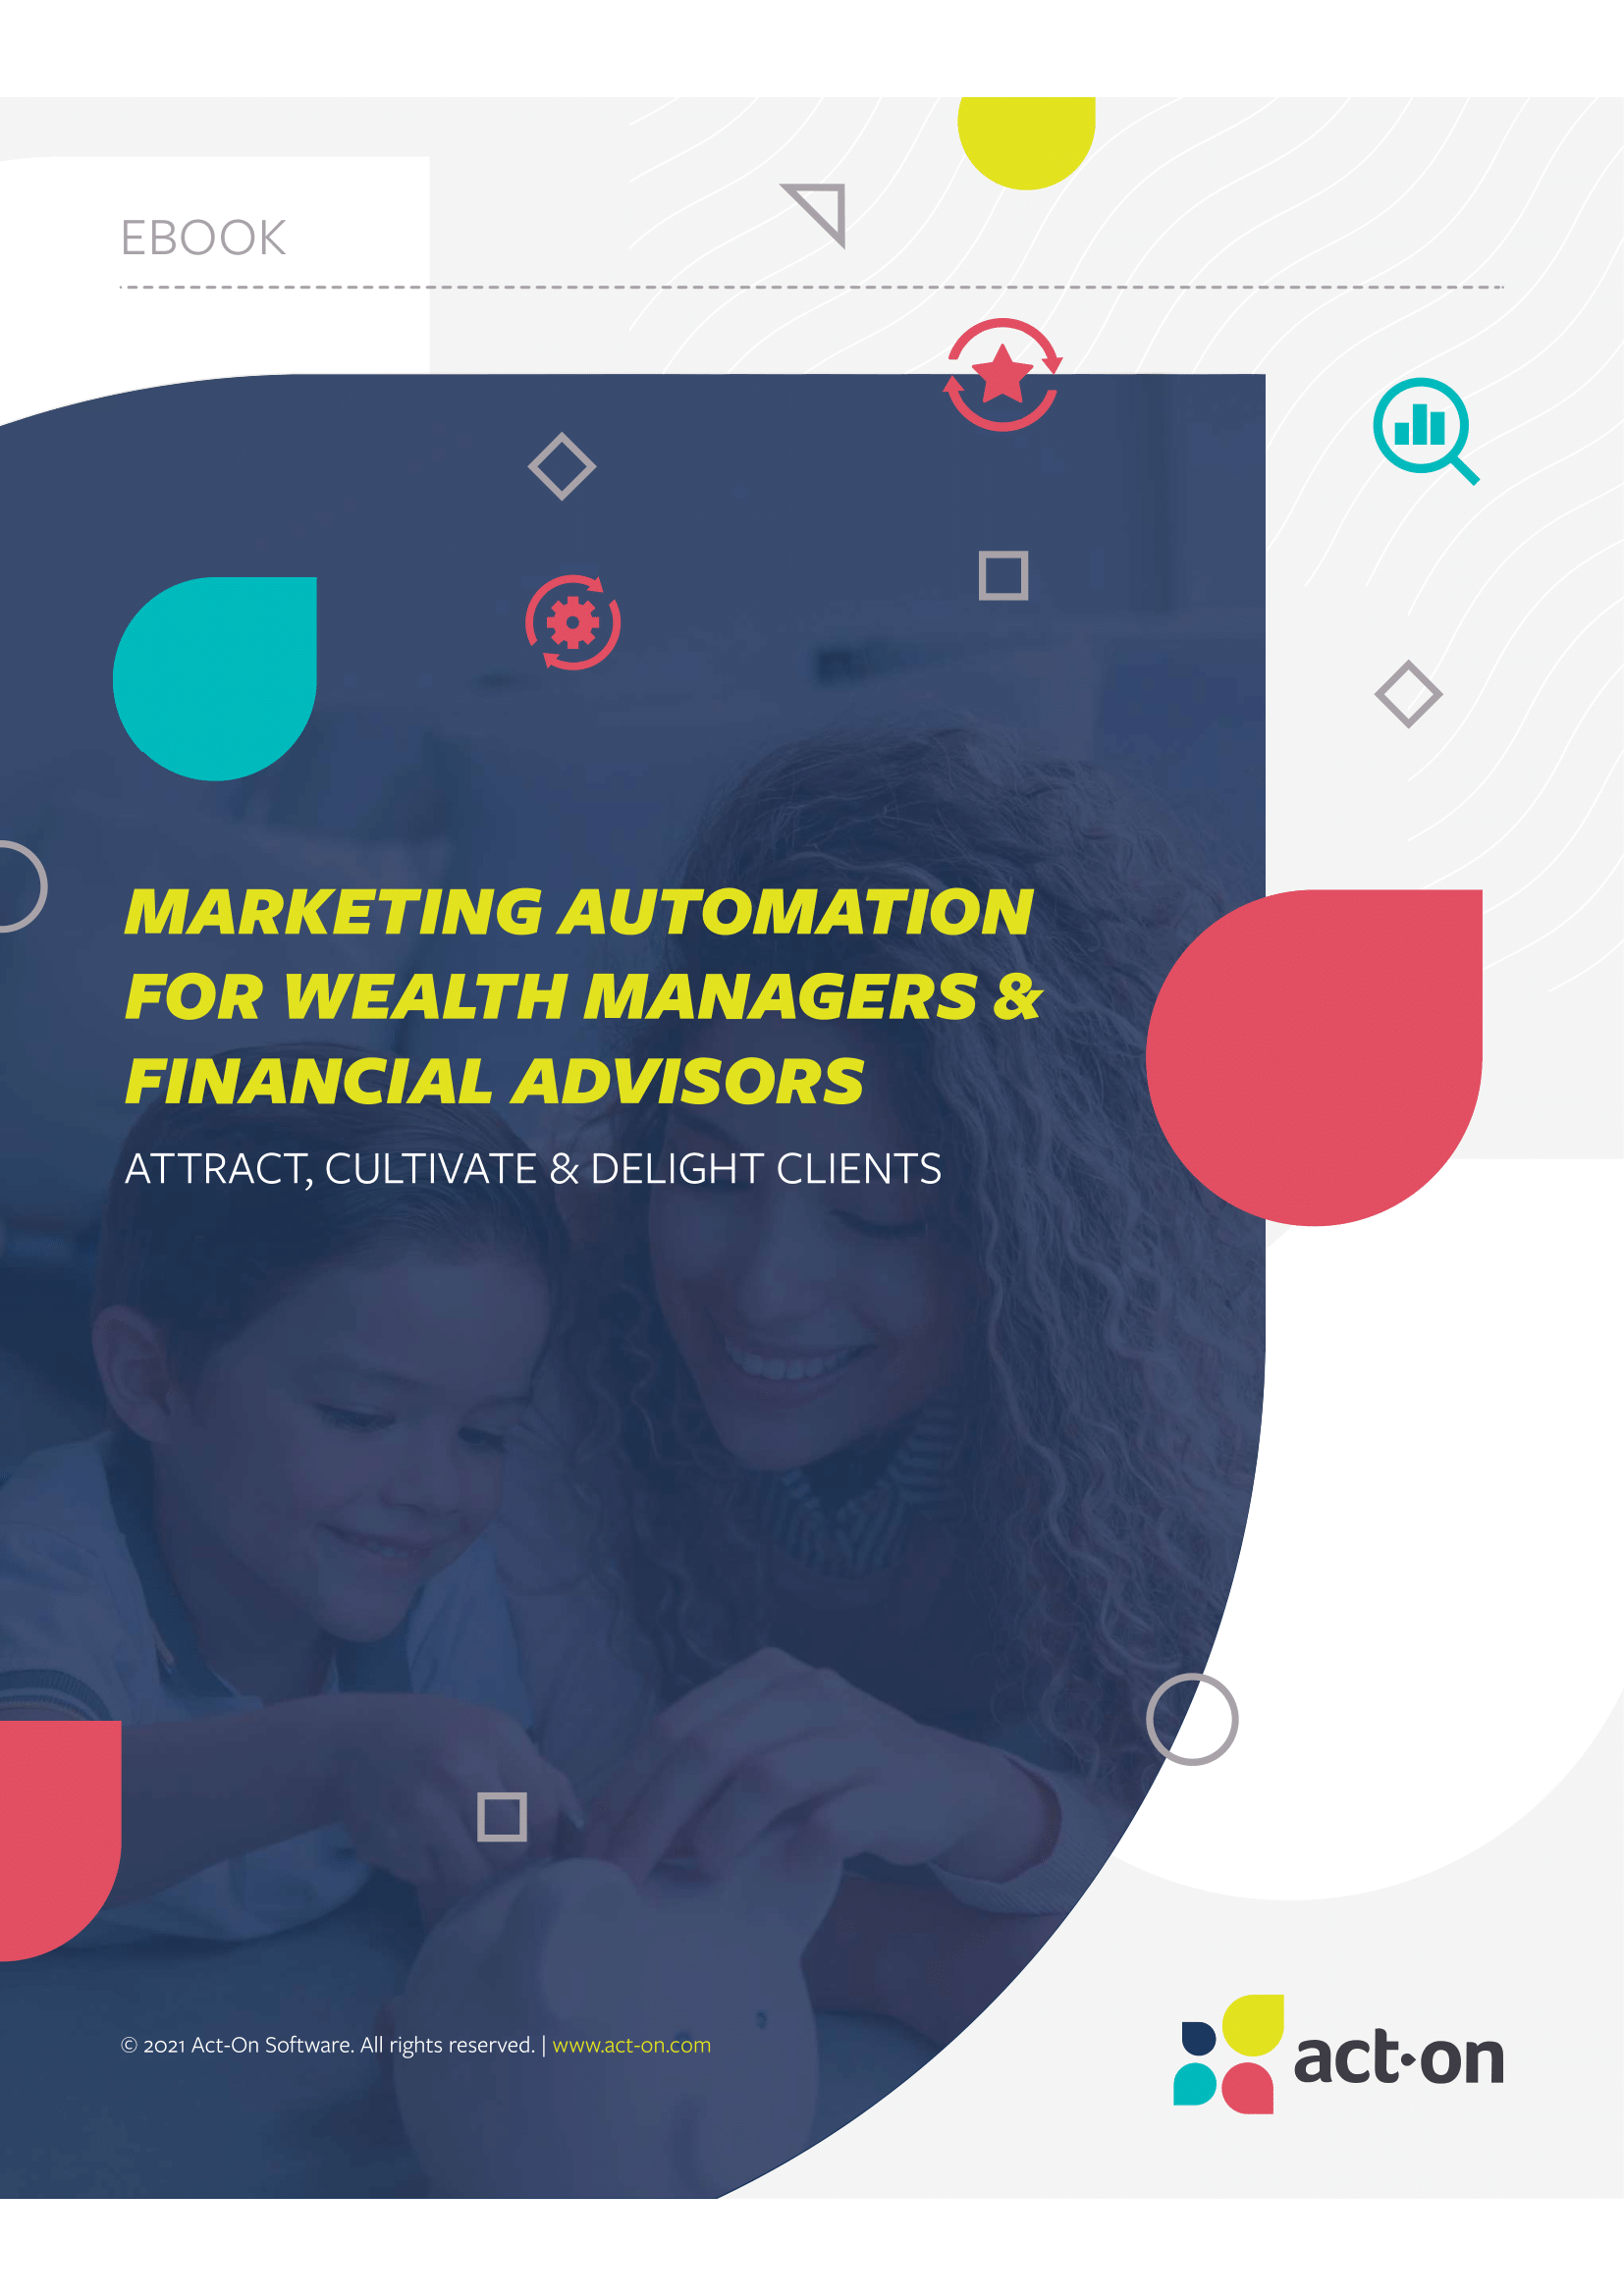 Marketing Automation for Wealth Managers and Financial Advisors